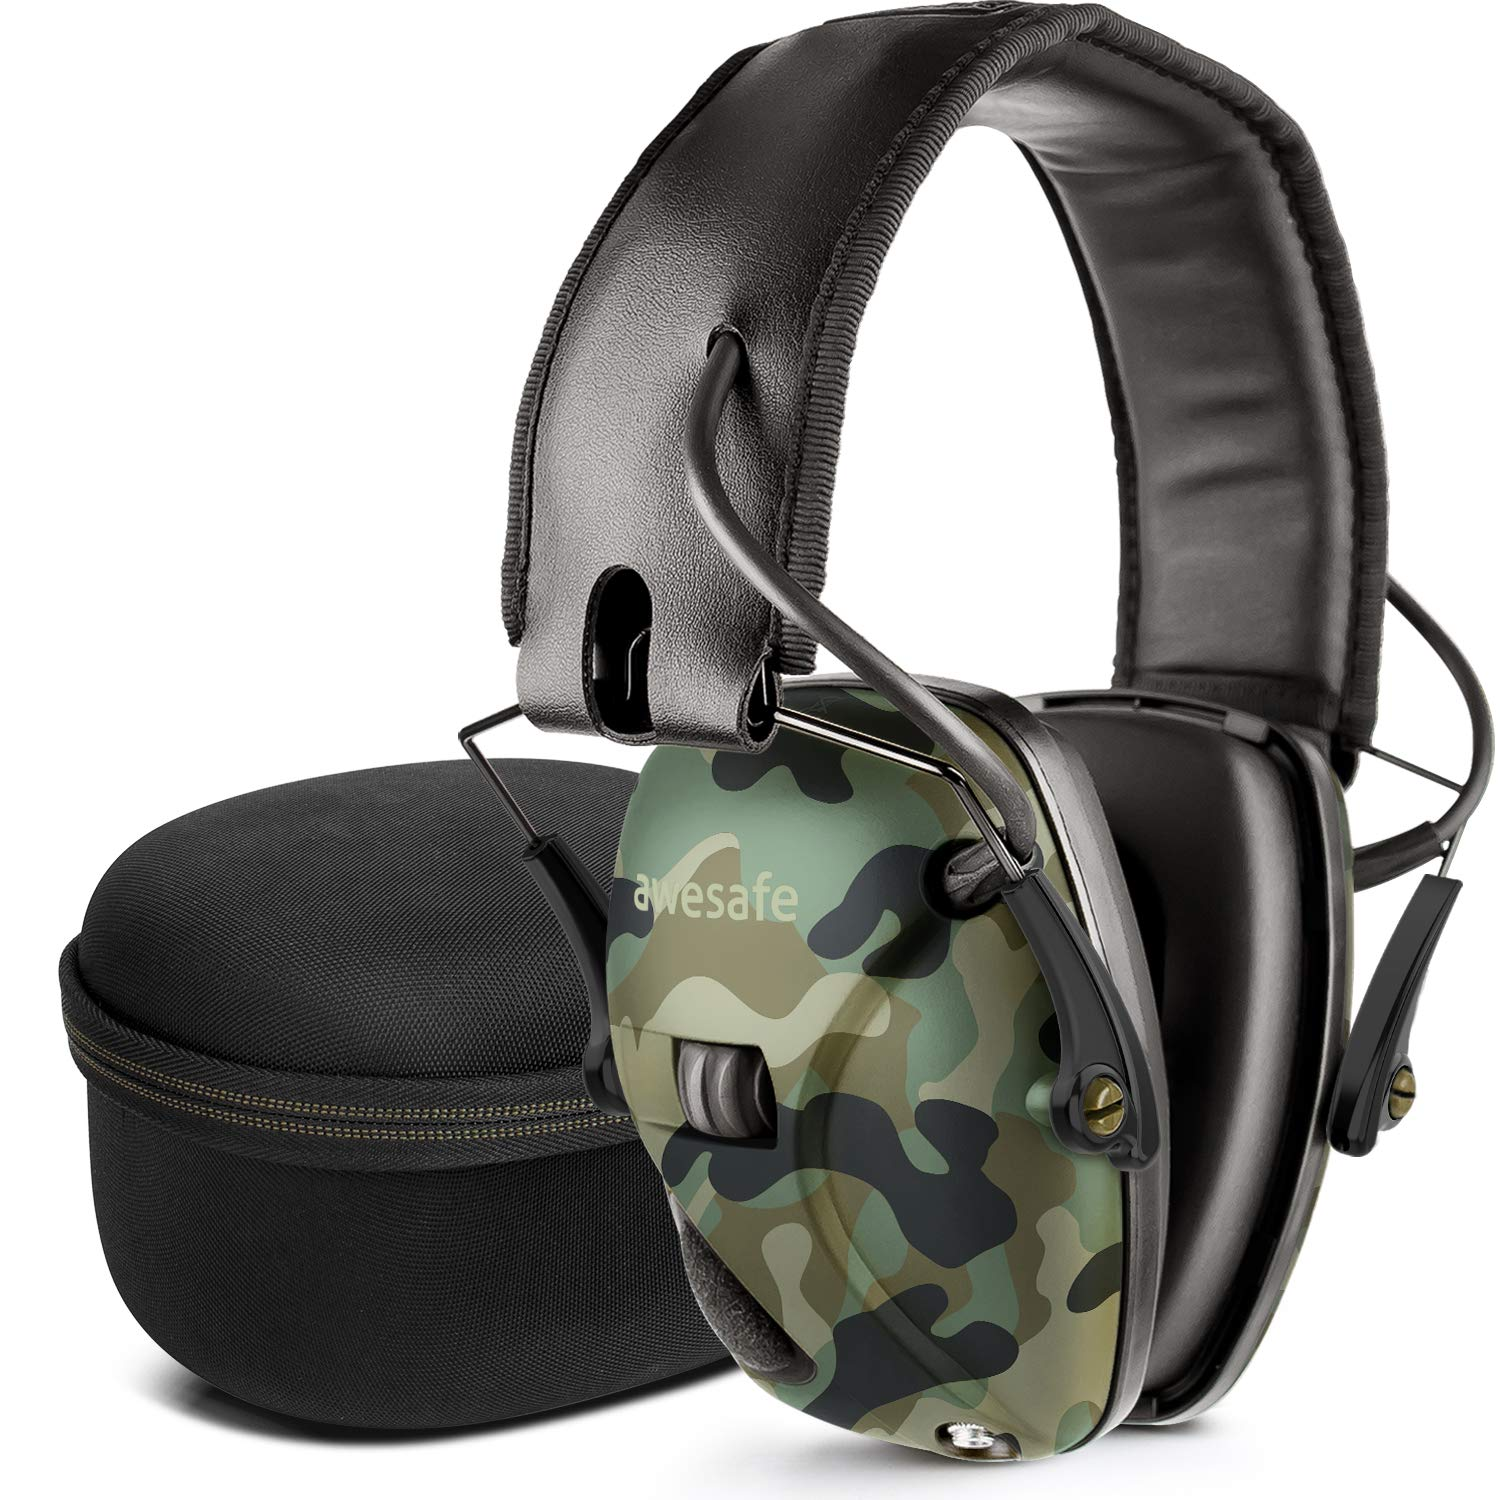 awesafe Electronic Shooting Earmuff, Noise Reduction Sound Amplification Electronic Safety Ear Muffs and Storage Case, Camo ...